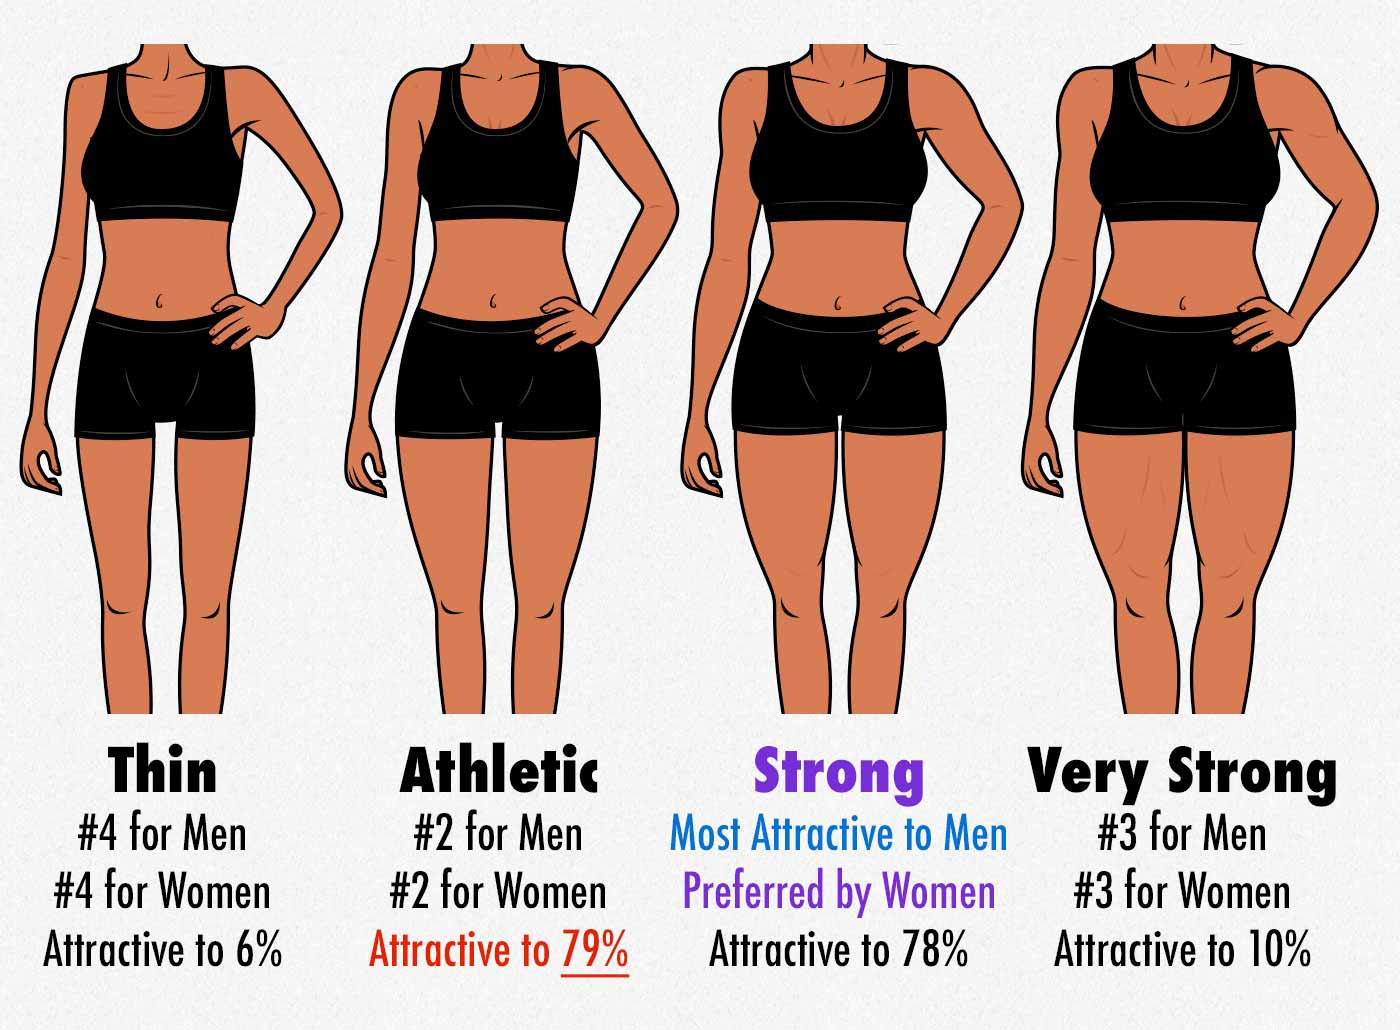 Survey results showing the amount of muscle that men prefer on a woman's body.